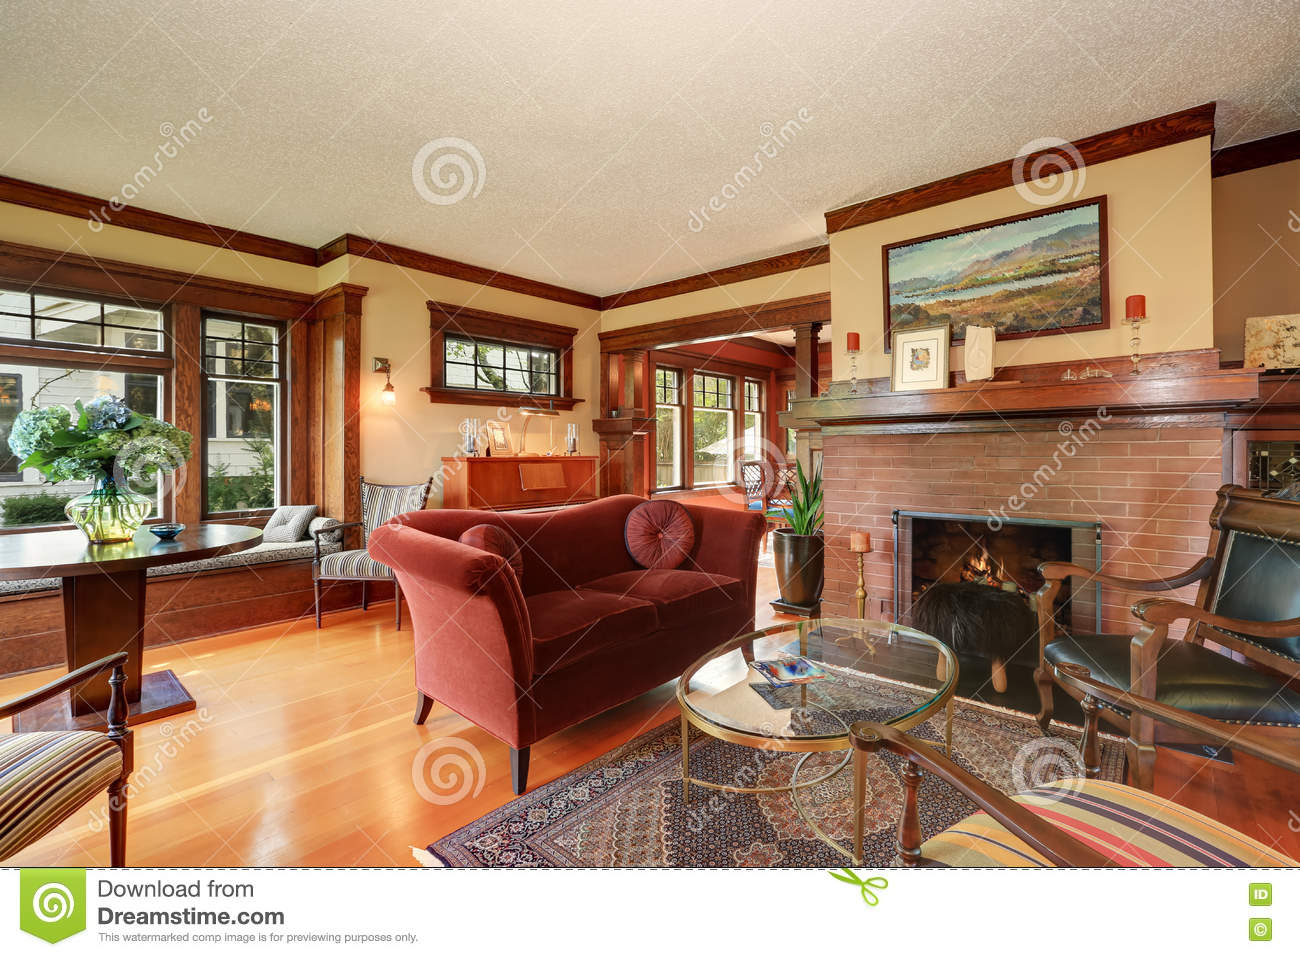 American classic living room interior design stock image for American classic interior